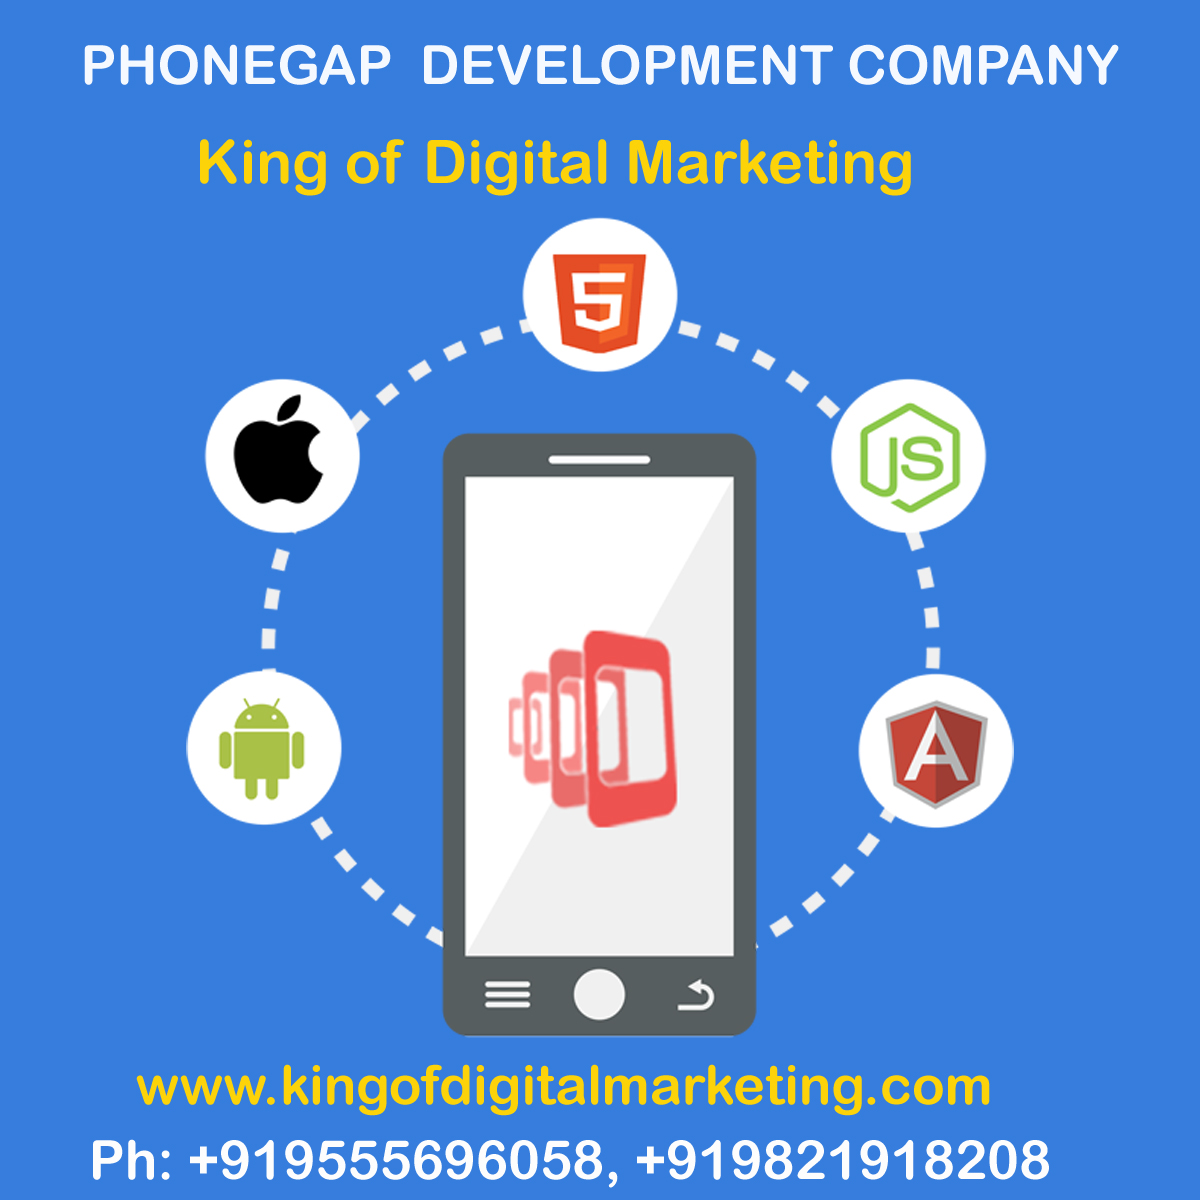 PhoneGap App Development Services Company